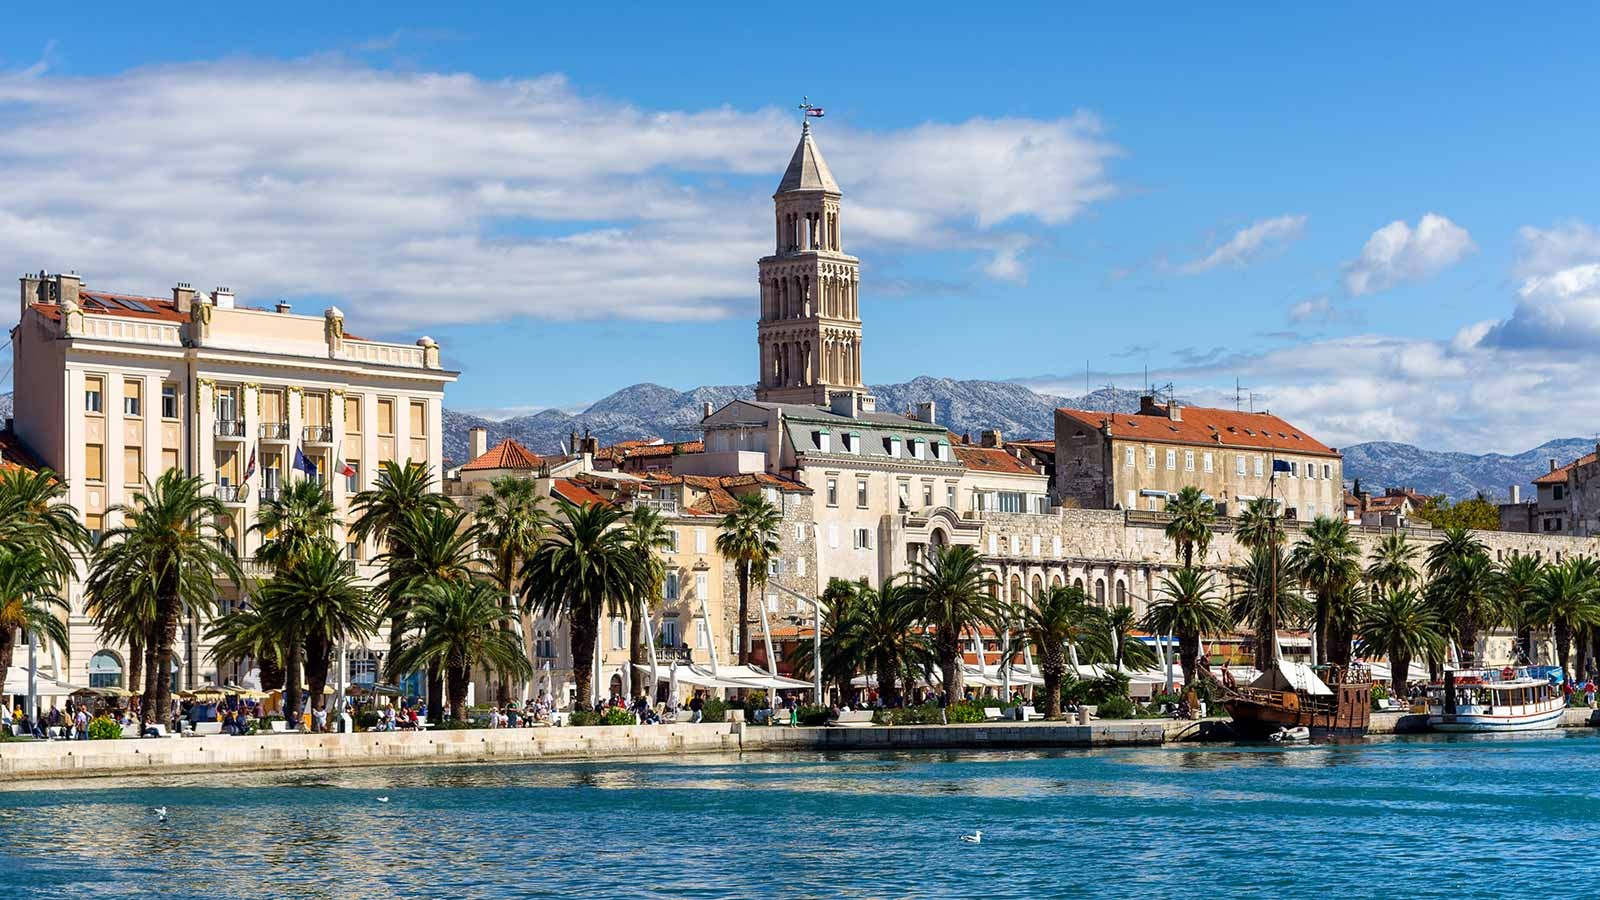 The Riva Promenade & south façade of the Diocletian Palace, Split